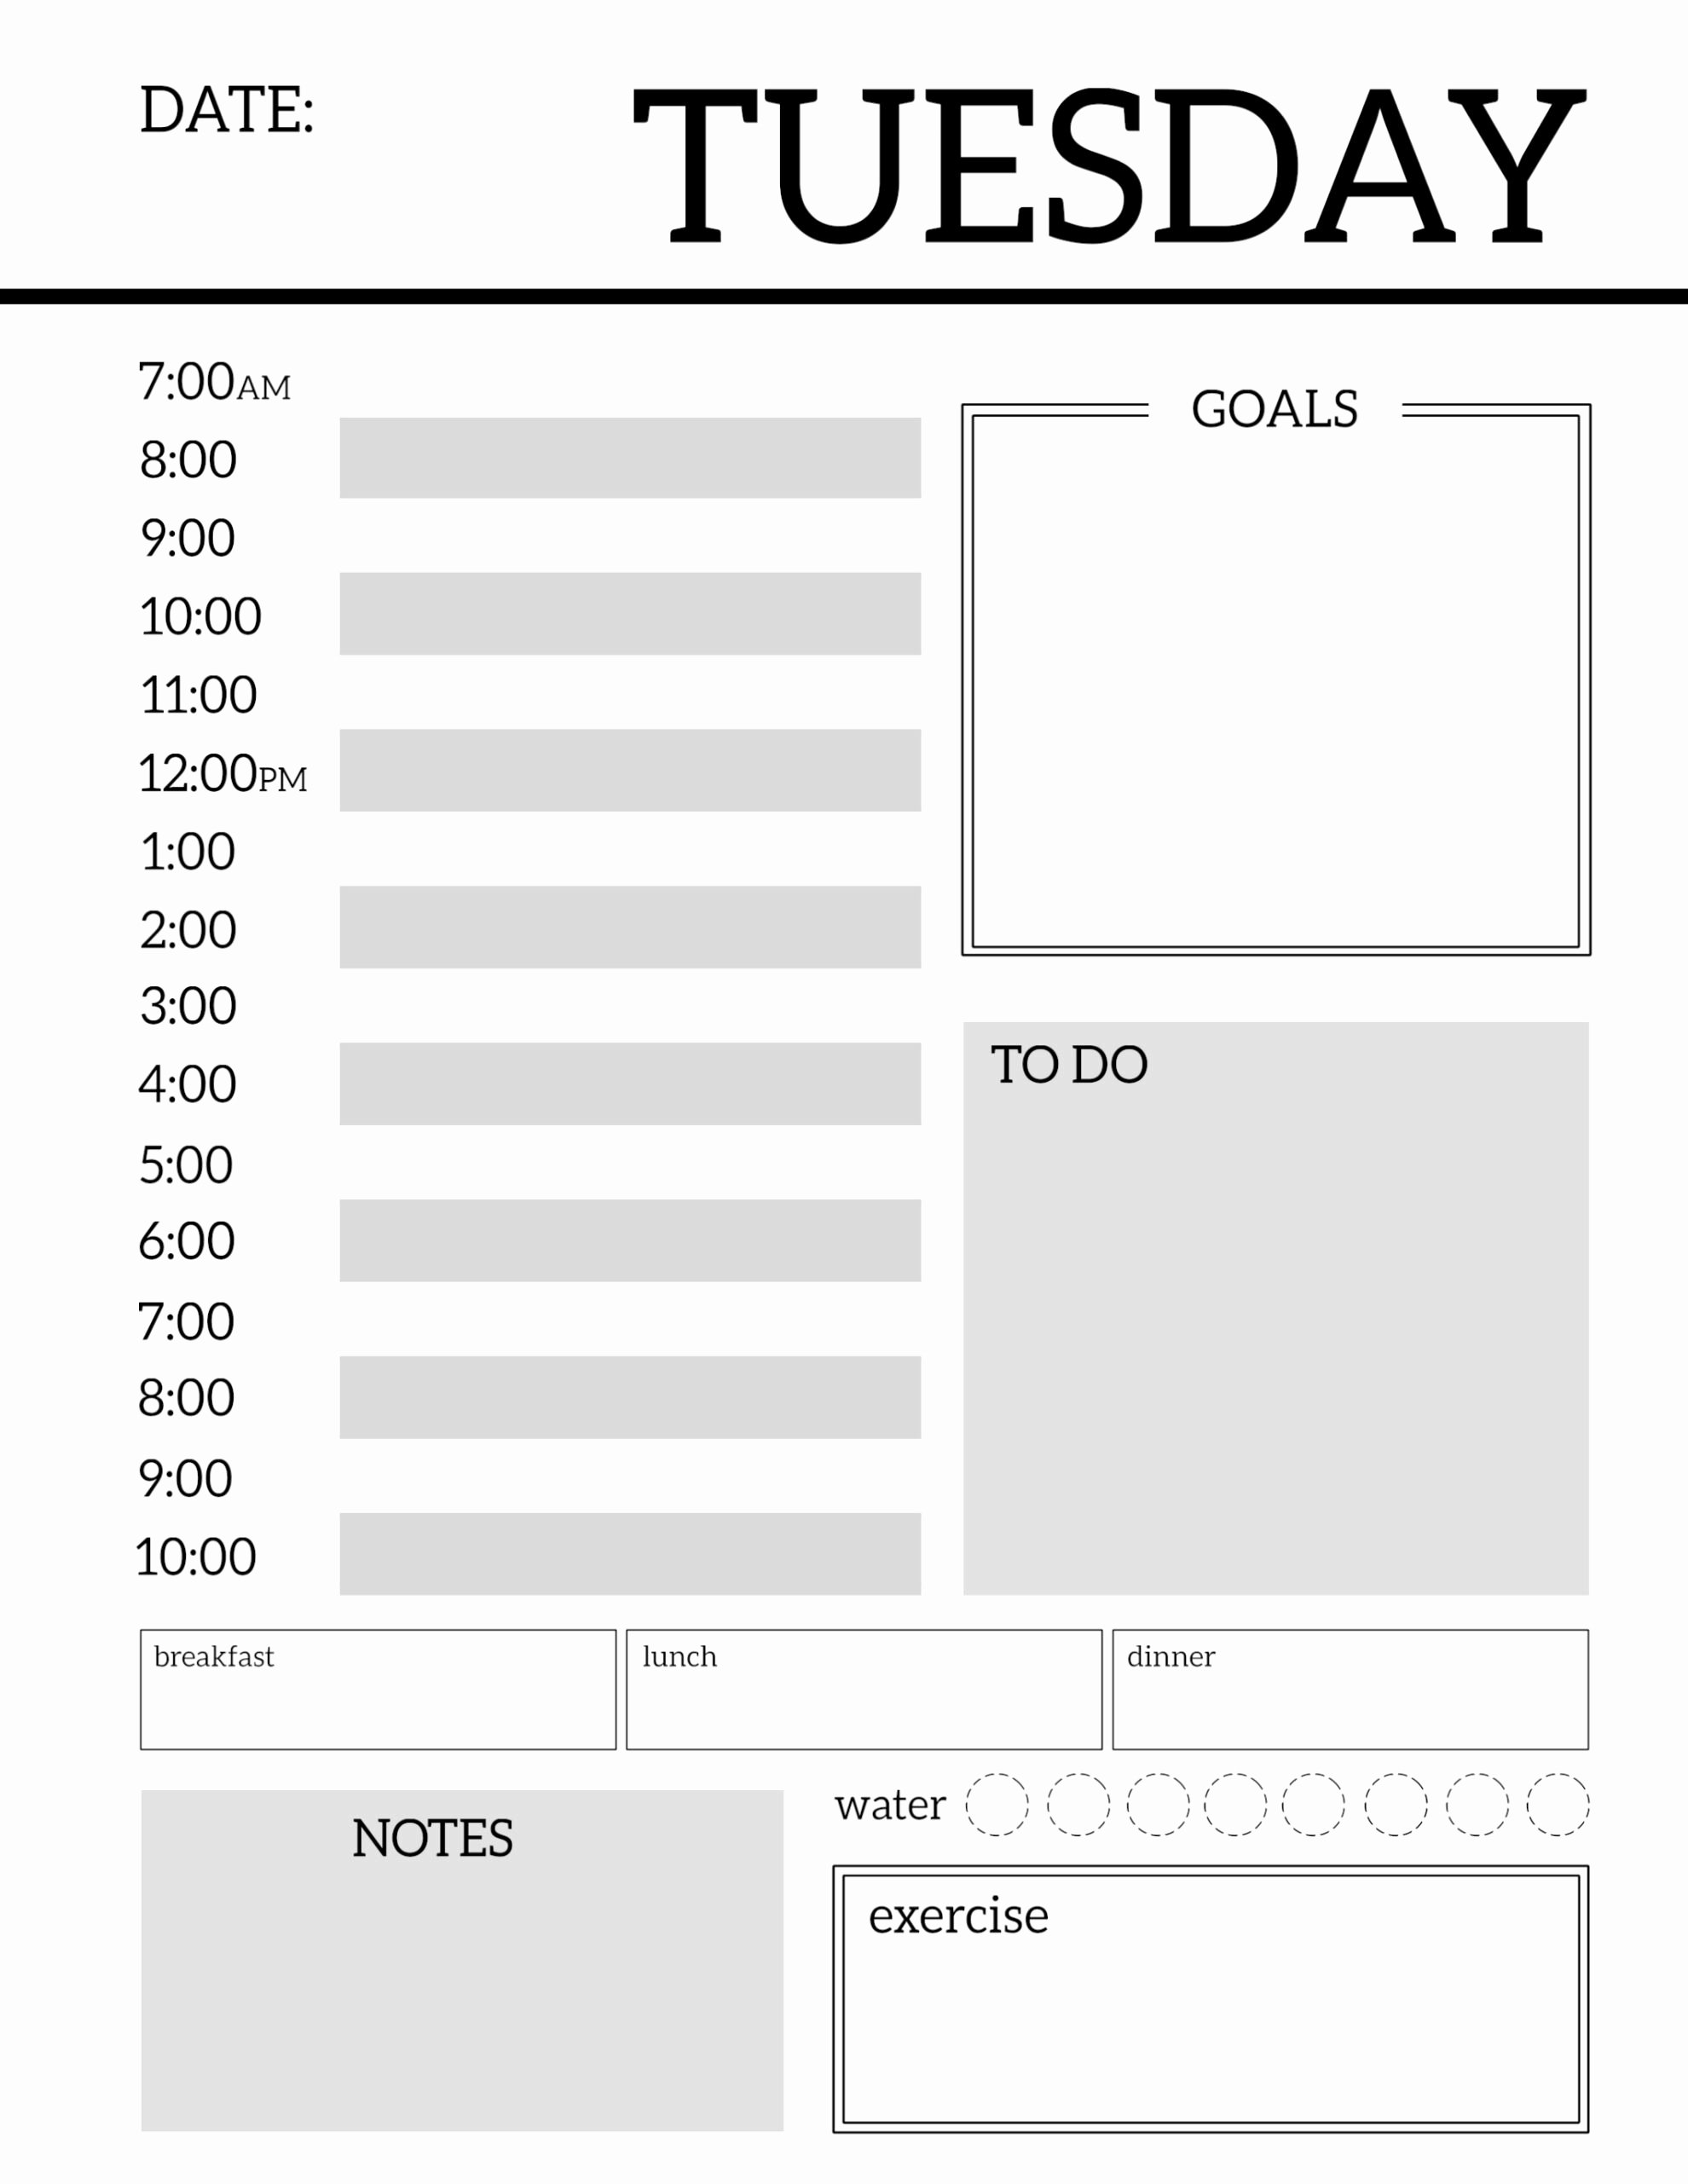 Daily Schedule Template Pdf Awesome Daily Planner Printable Template Sheets Paper Trail Design